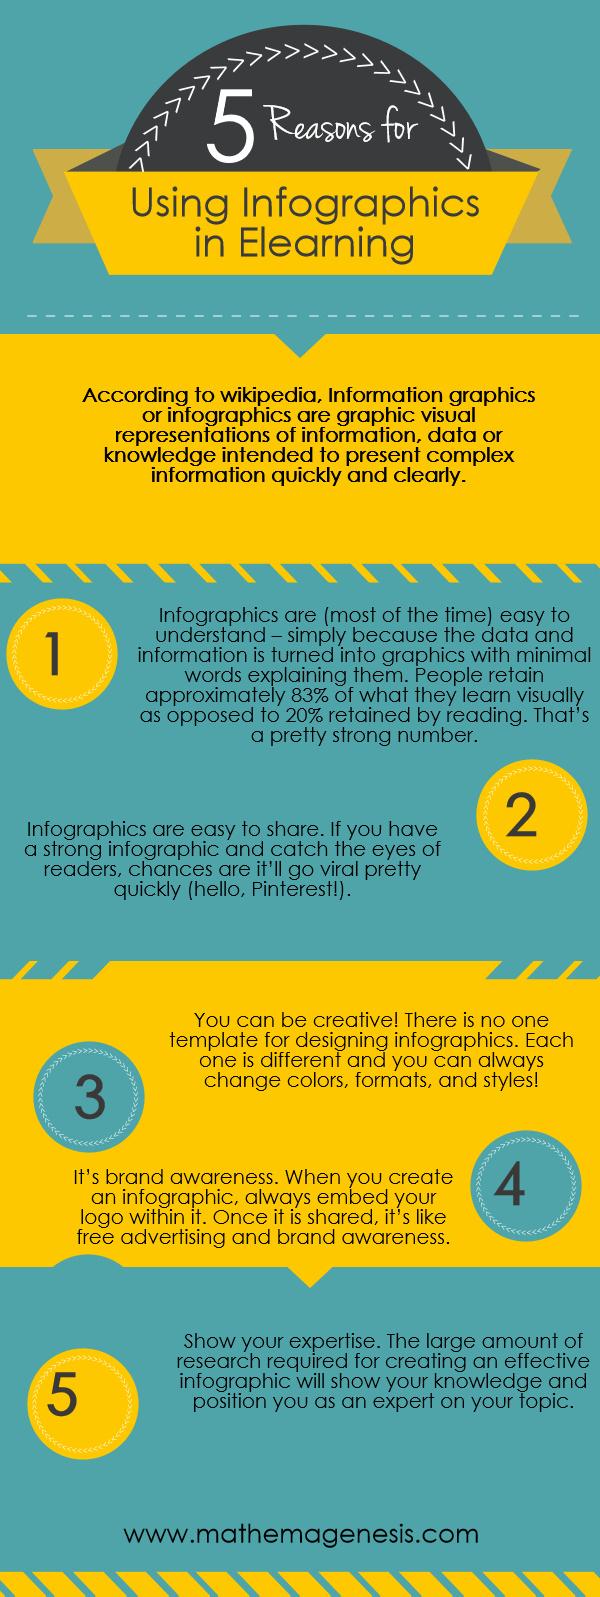 5-reasons-for-using-infographics-in-e-learning